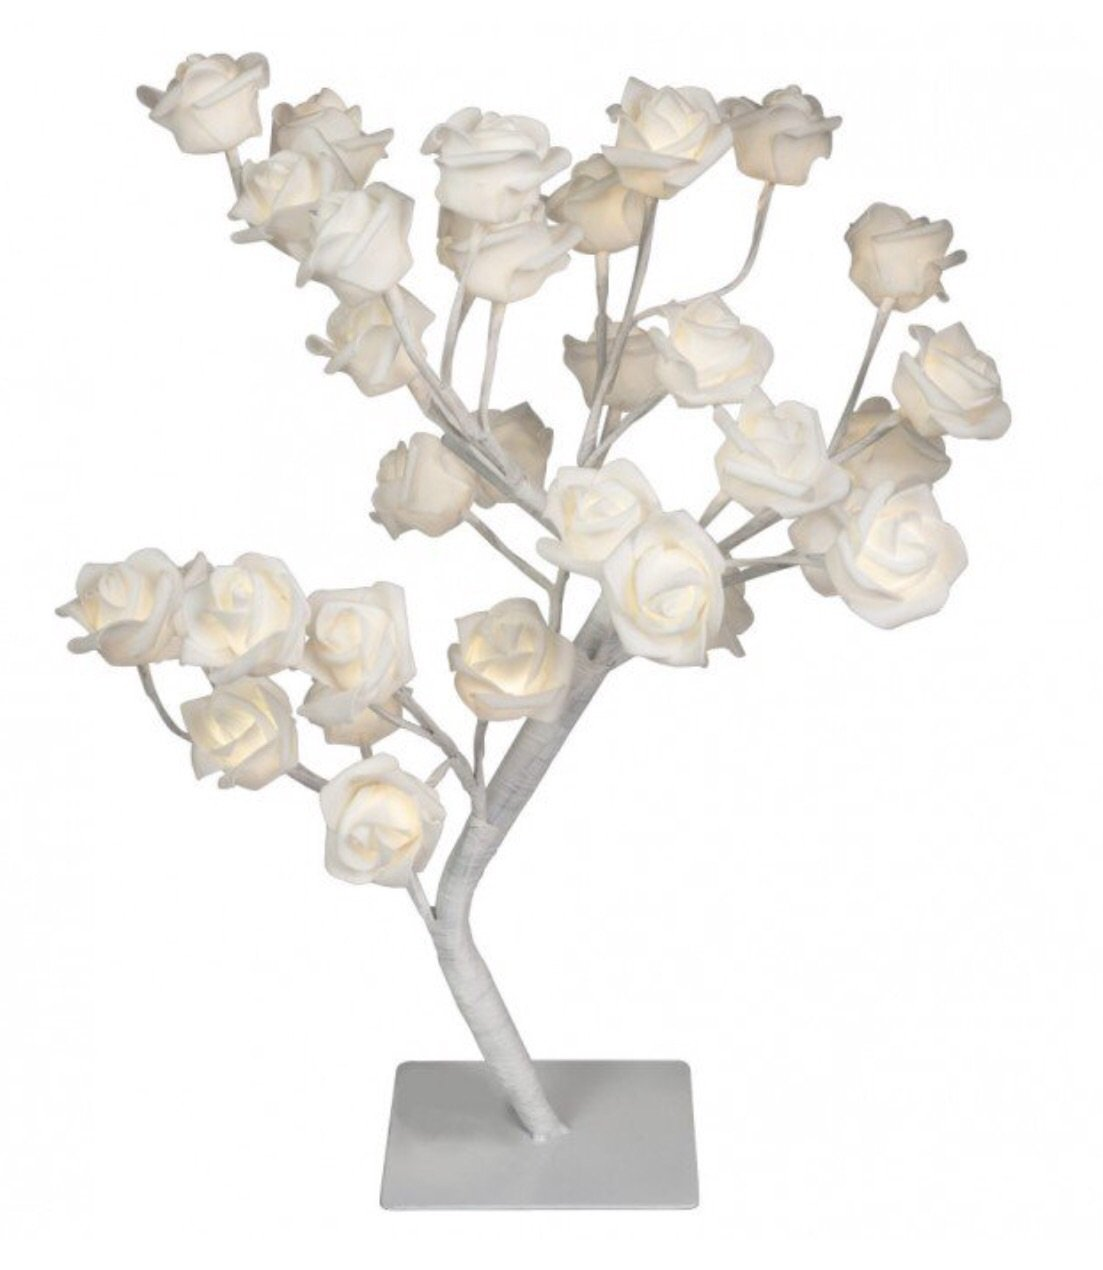 LED Artificial White Rose Twig Tree - Warm White Crown crest